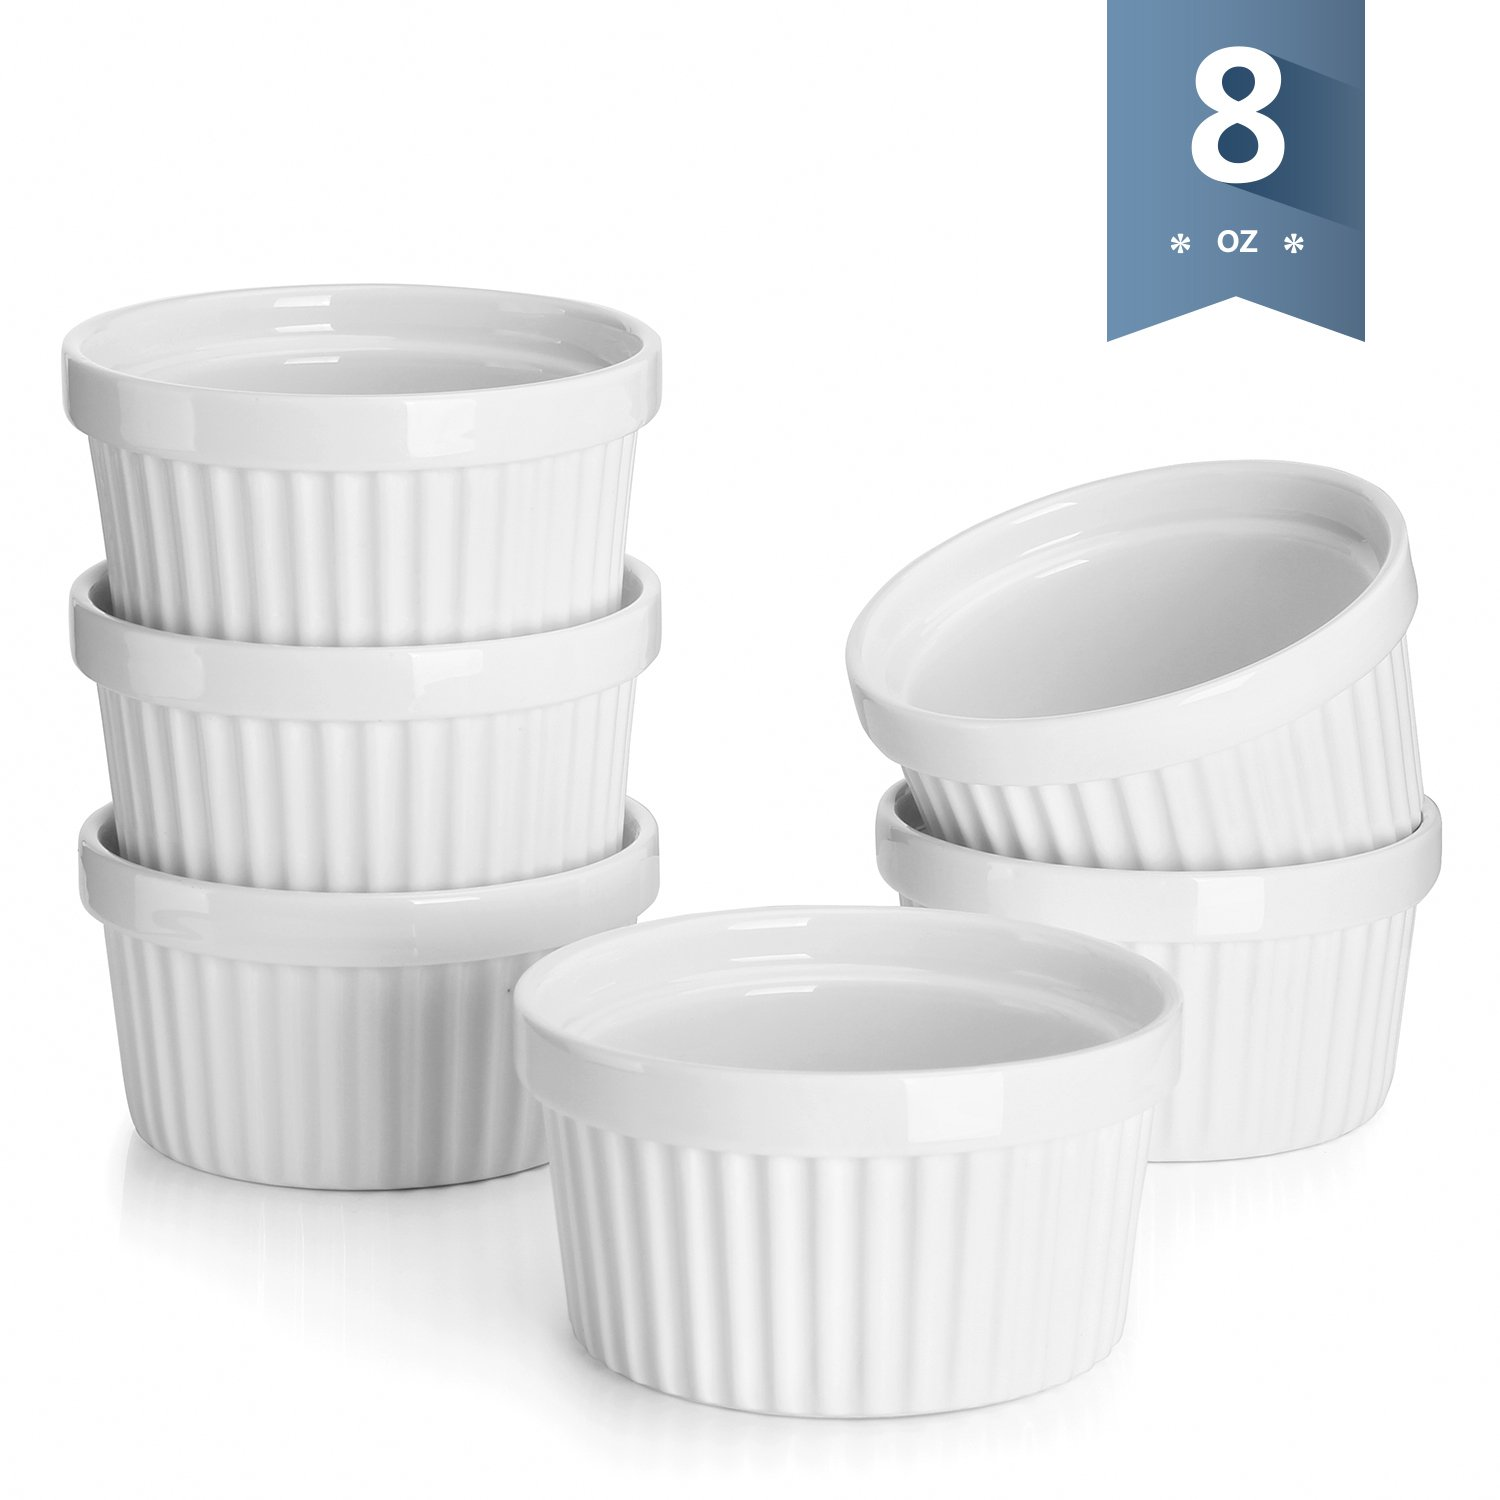 Sweese 501.001 Porcelain Souffle Dishes, Ramekins - 8 Ounce for Souffle, Creme Brulee and Ice Cream - Set of 6, White by Sweese